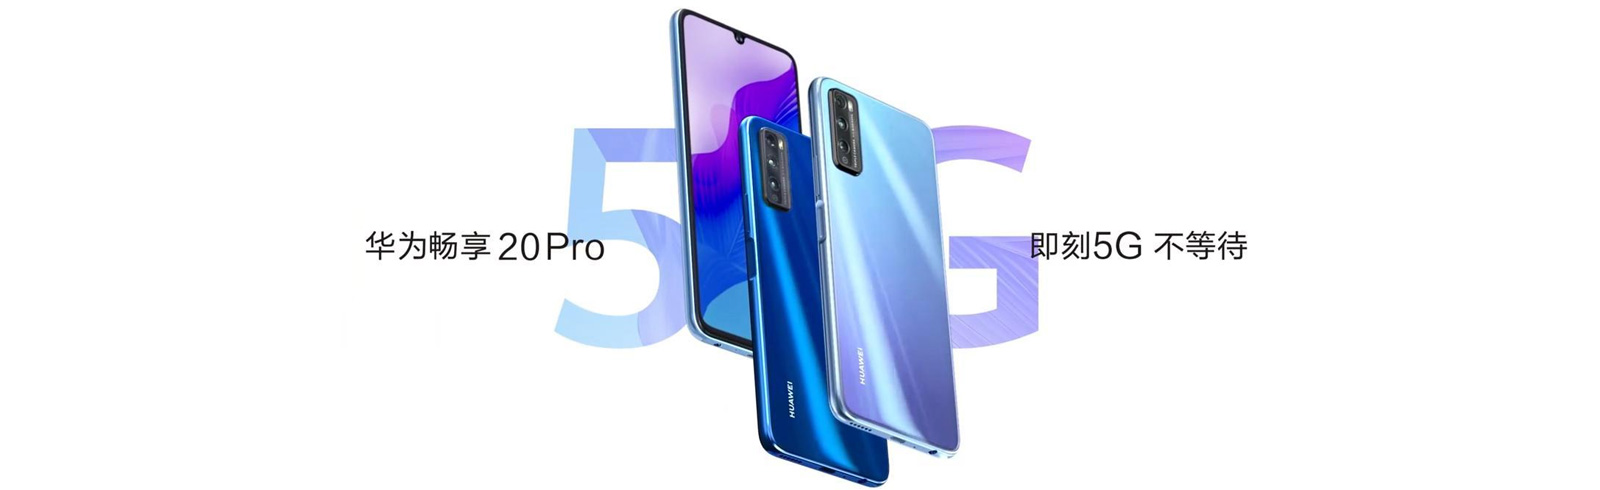 Huawei Enjoy 20 Pro is announced - specifications and price